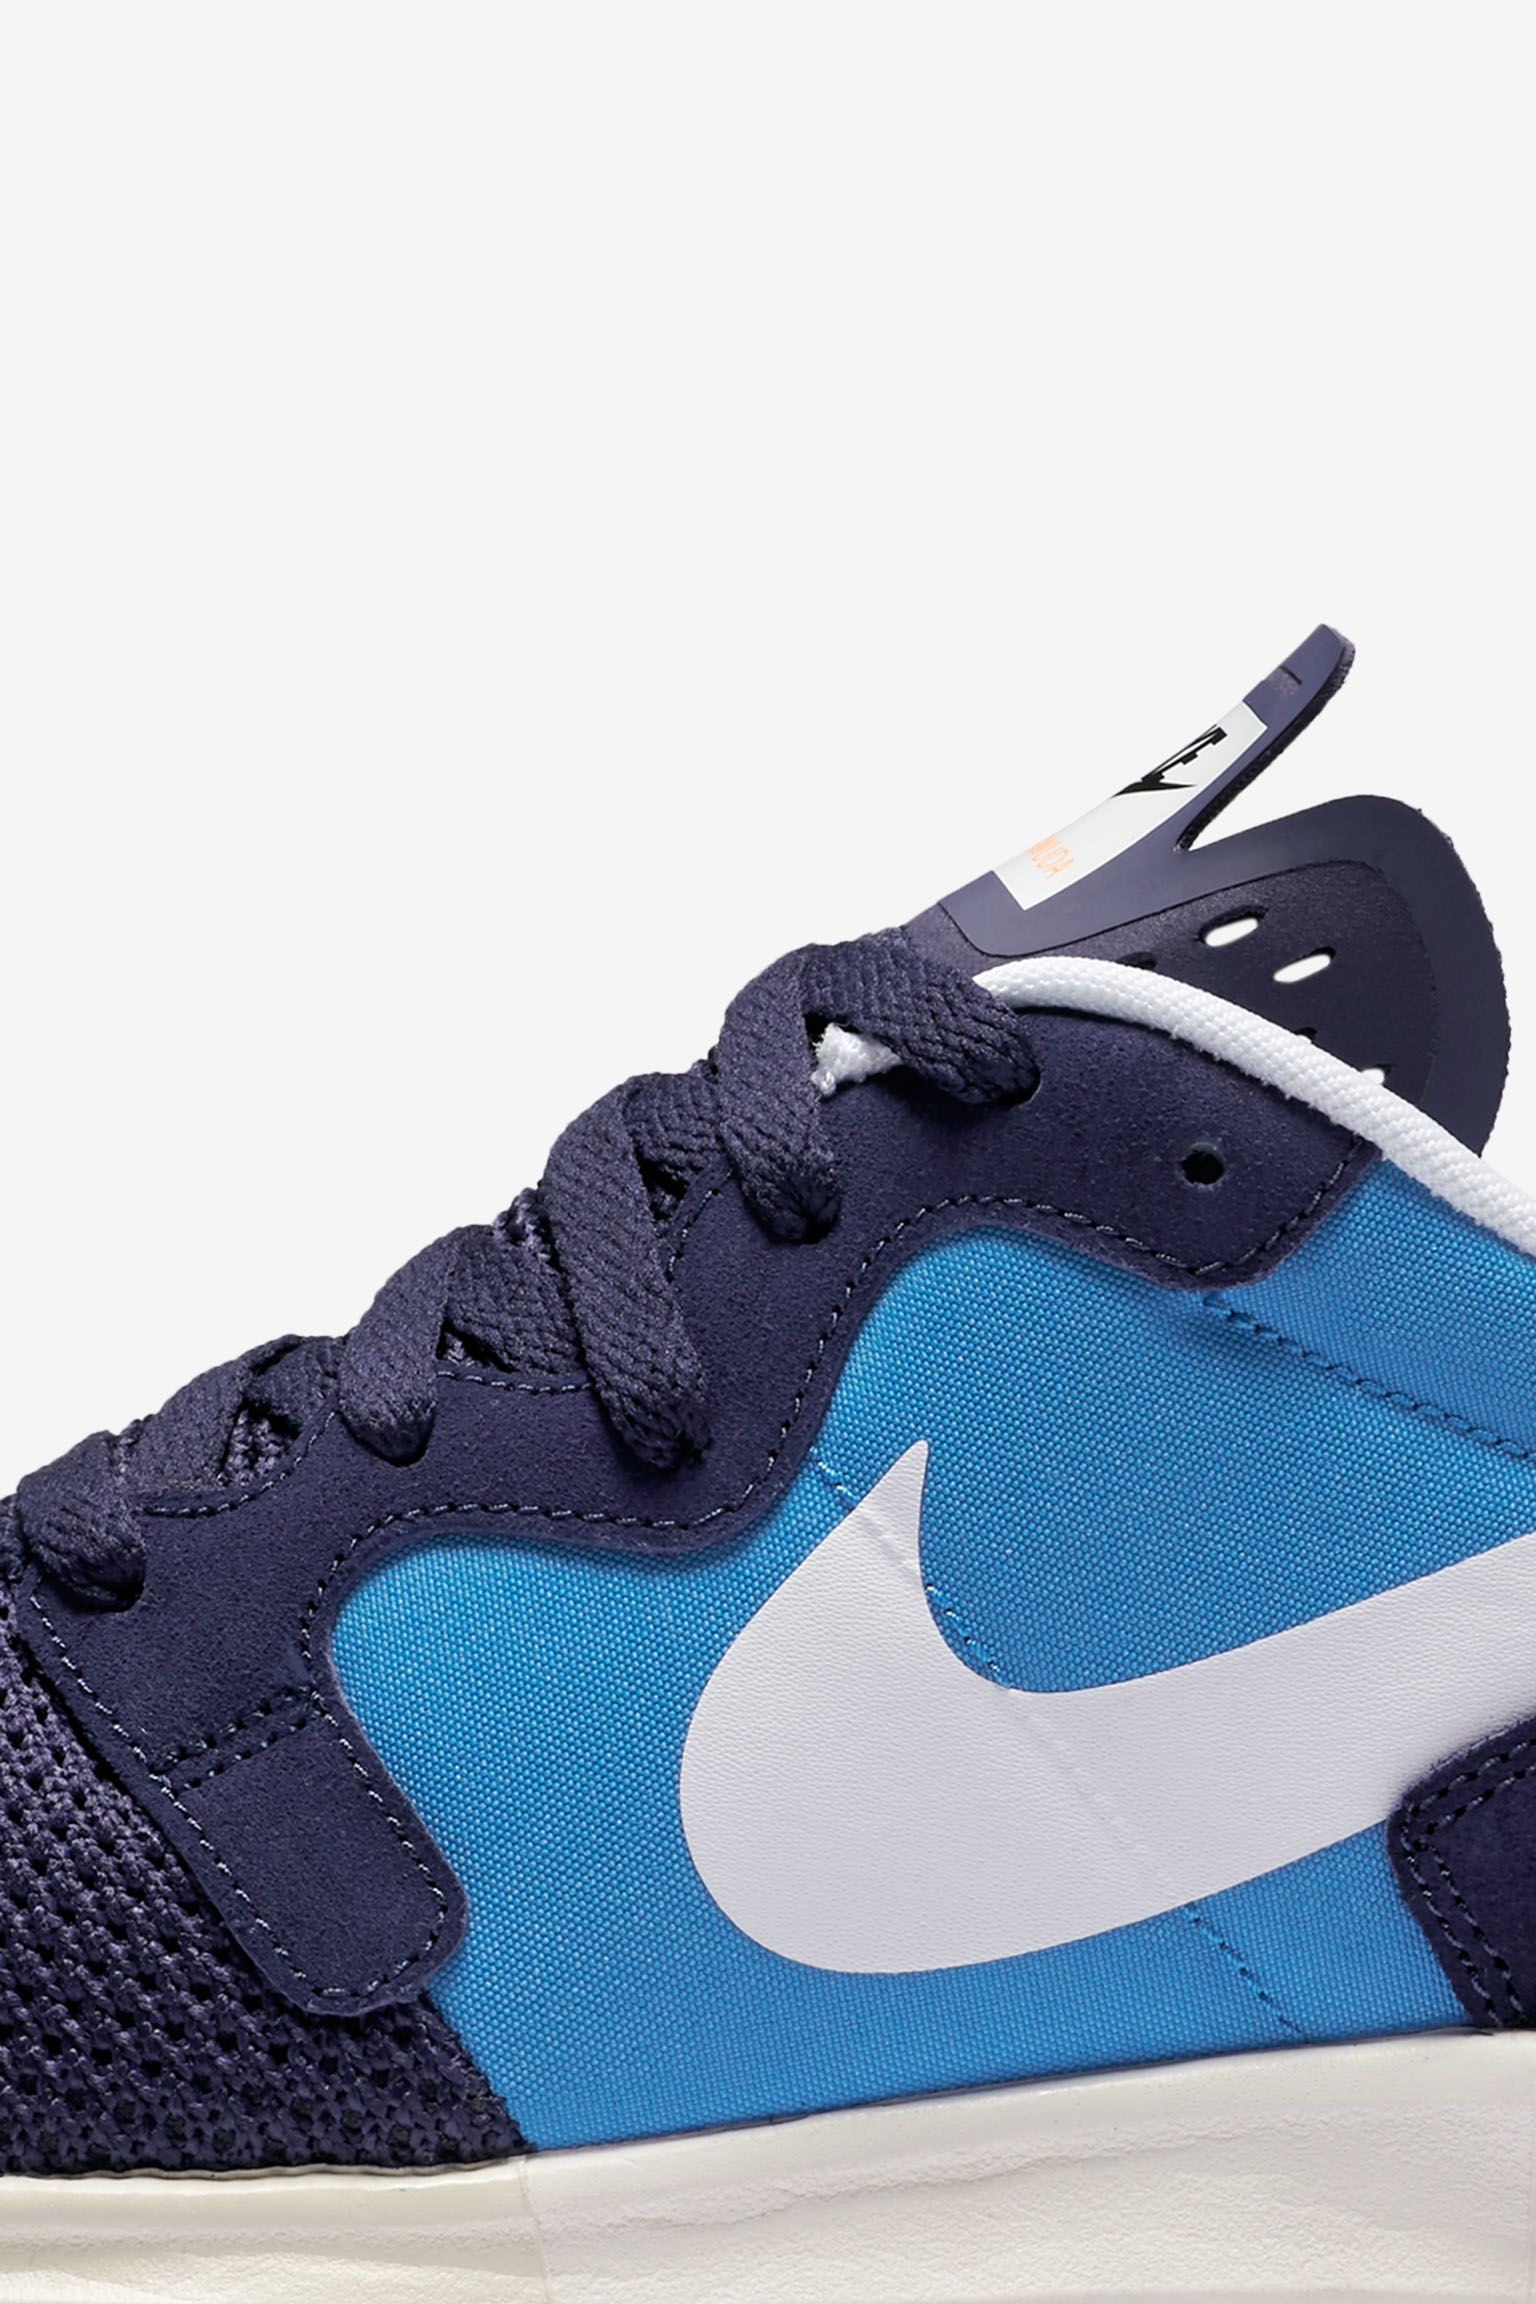 Nike Air Berwuda 'Blitz Blue & White'